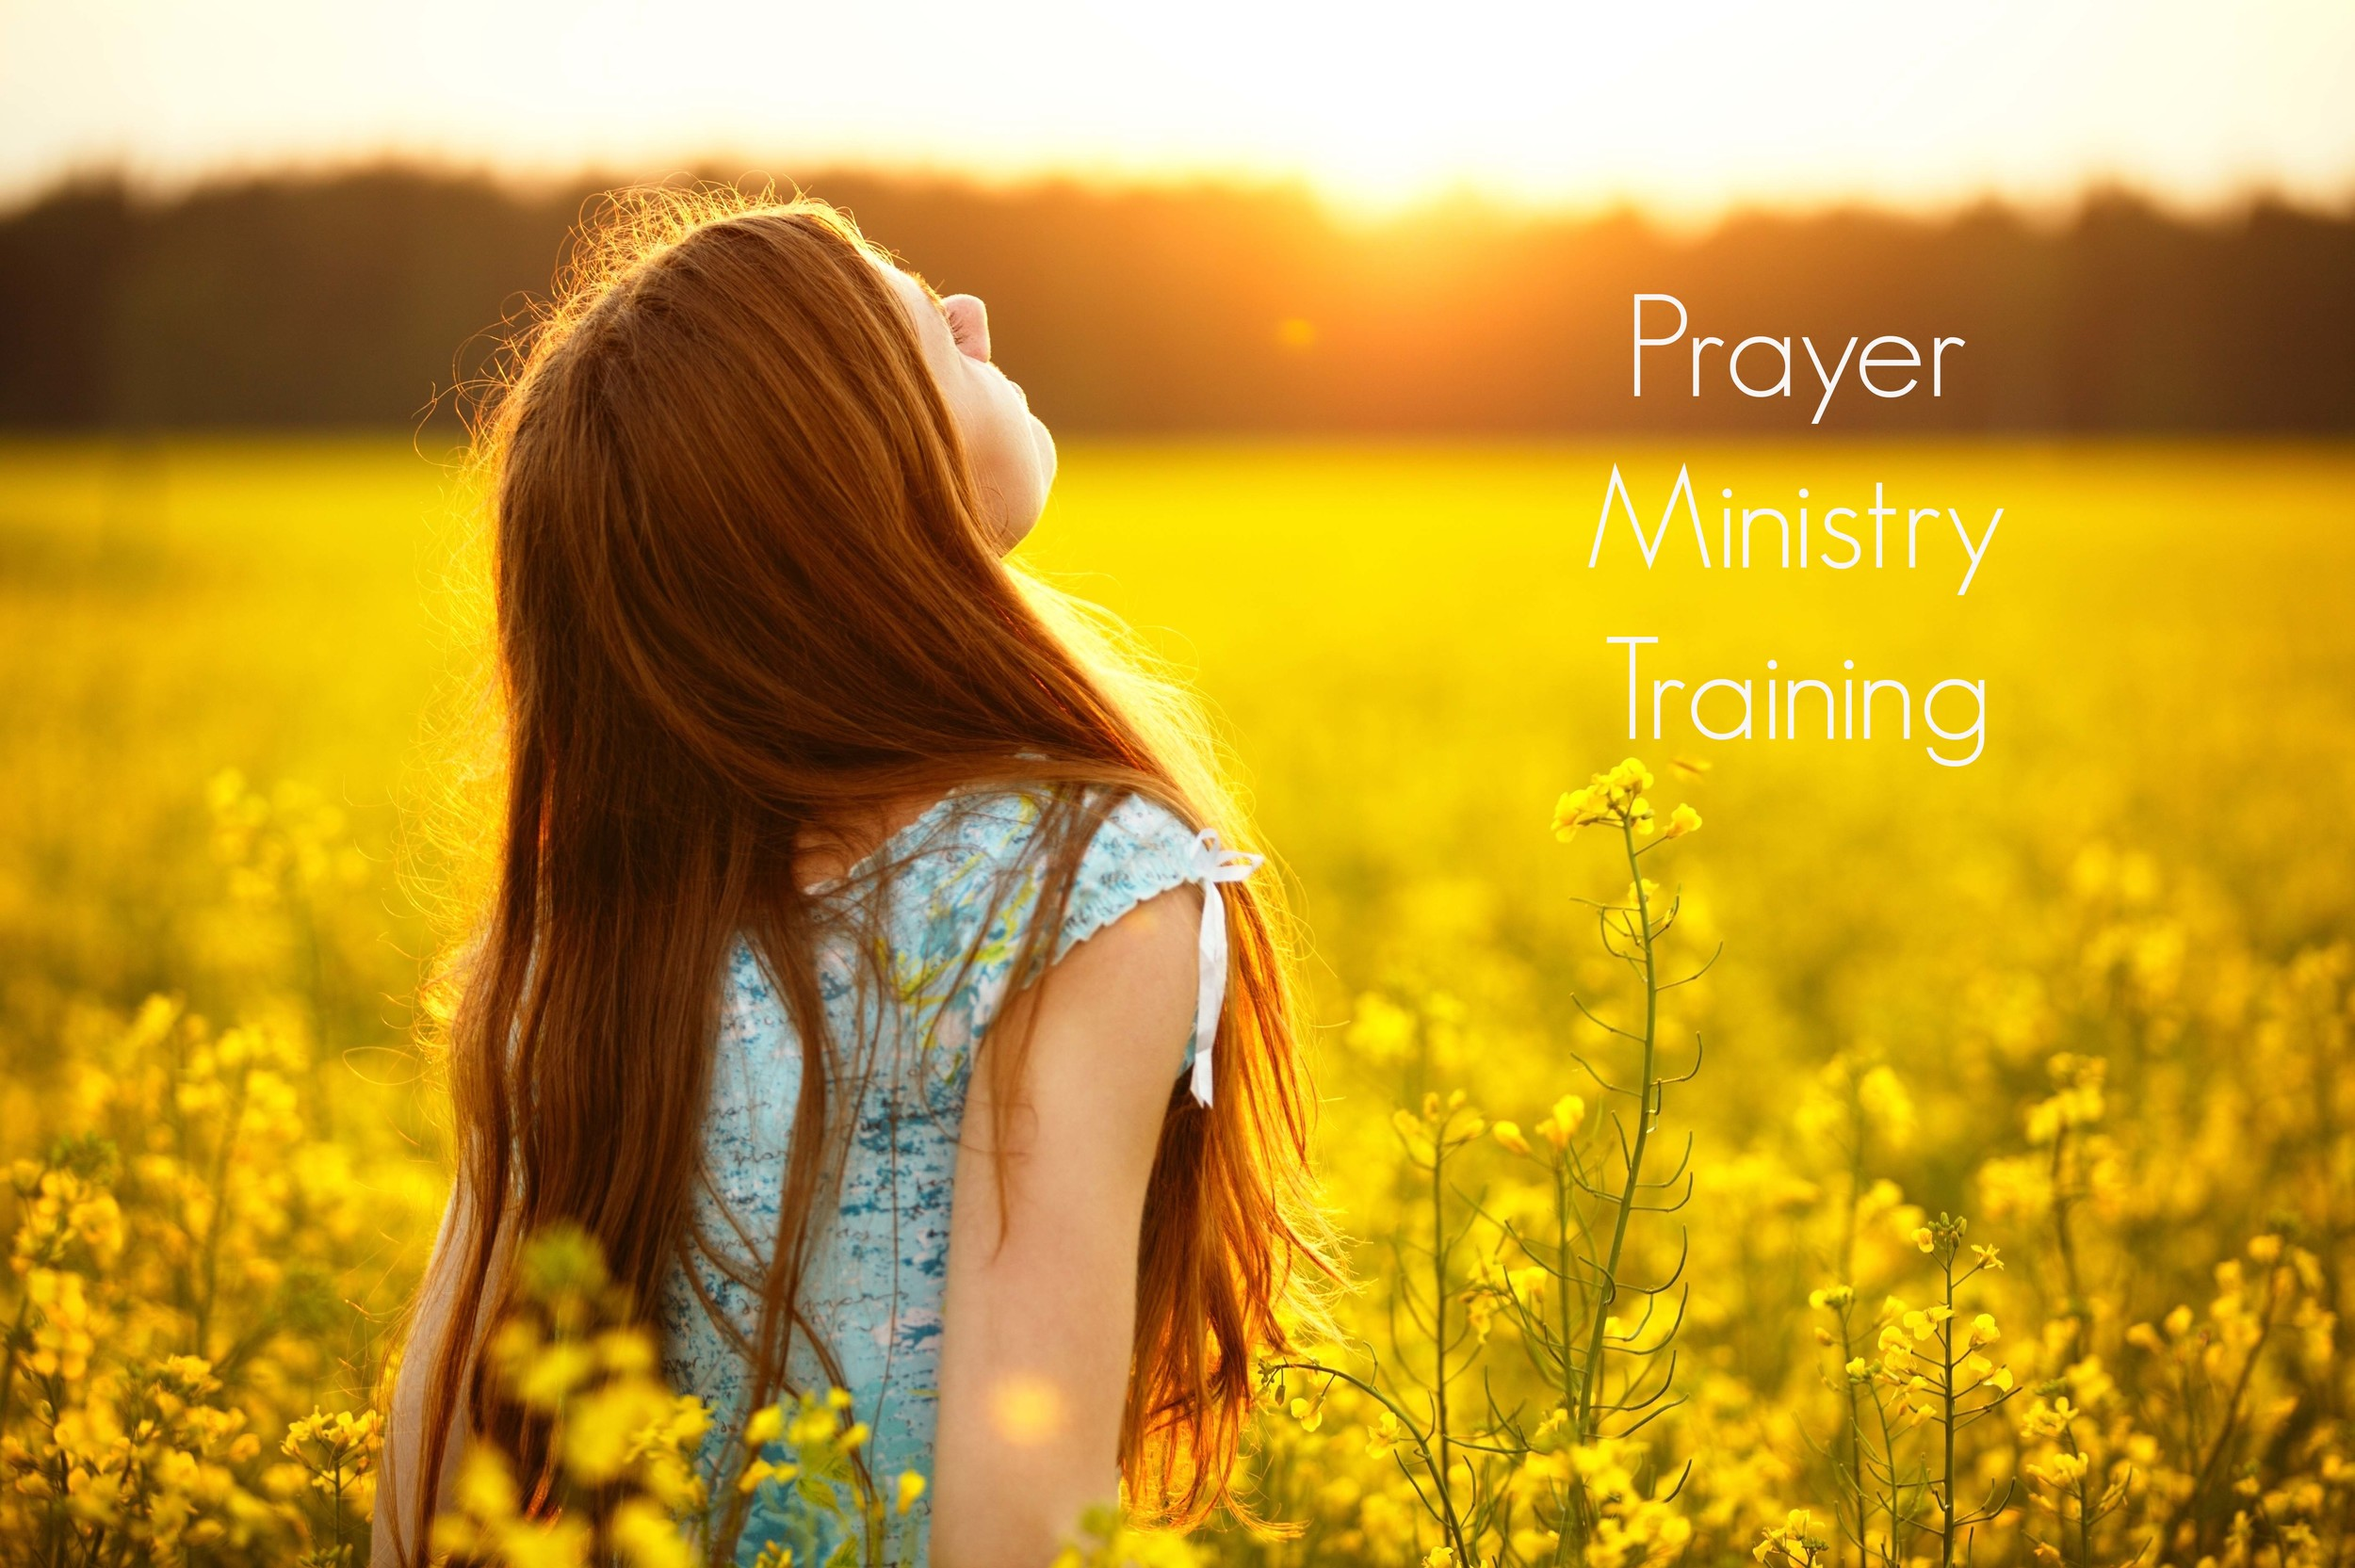 Prayer Ministry Training starts March 27/15 and runs to June 13/15. Click picture for more information.